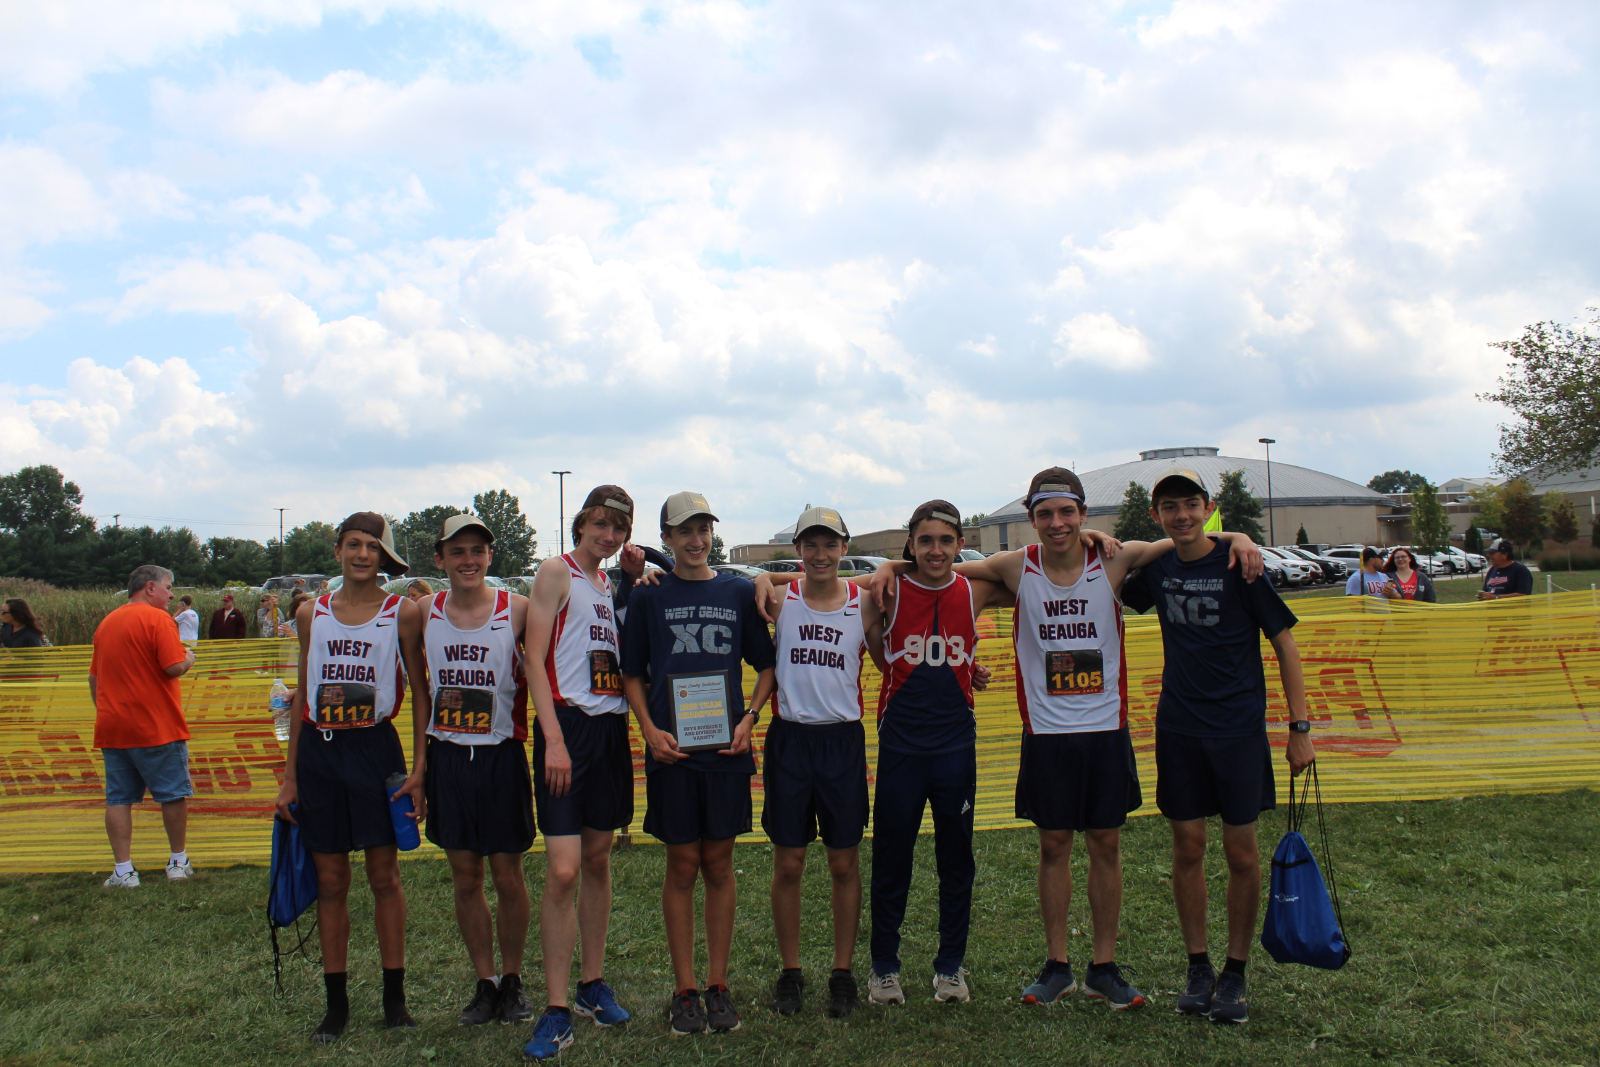 Boys Varsity Cross Country finishes 1st place at George Gross Redskins XC Invitational